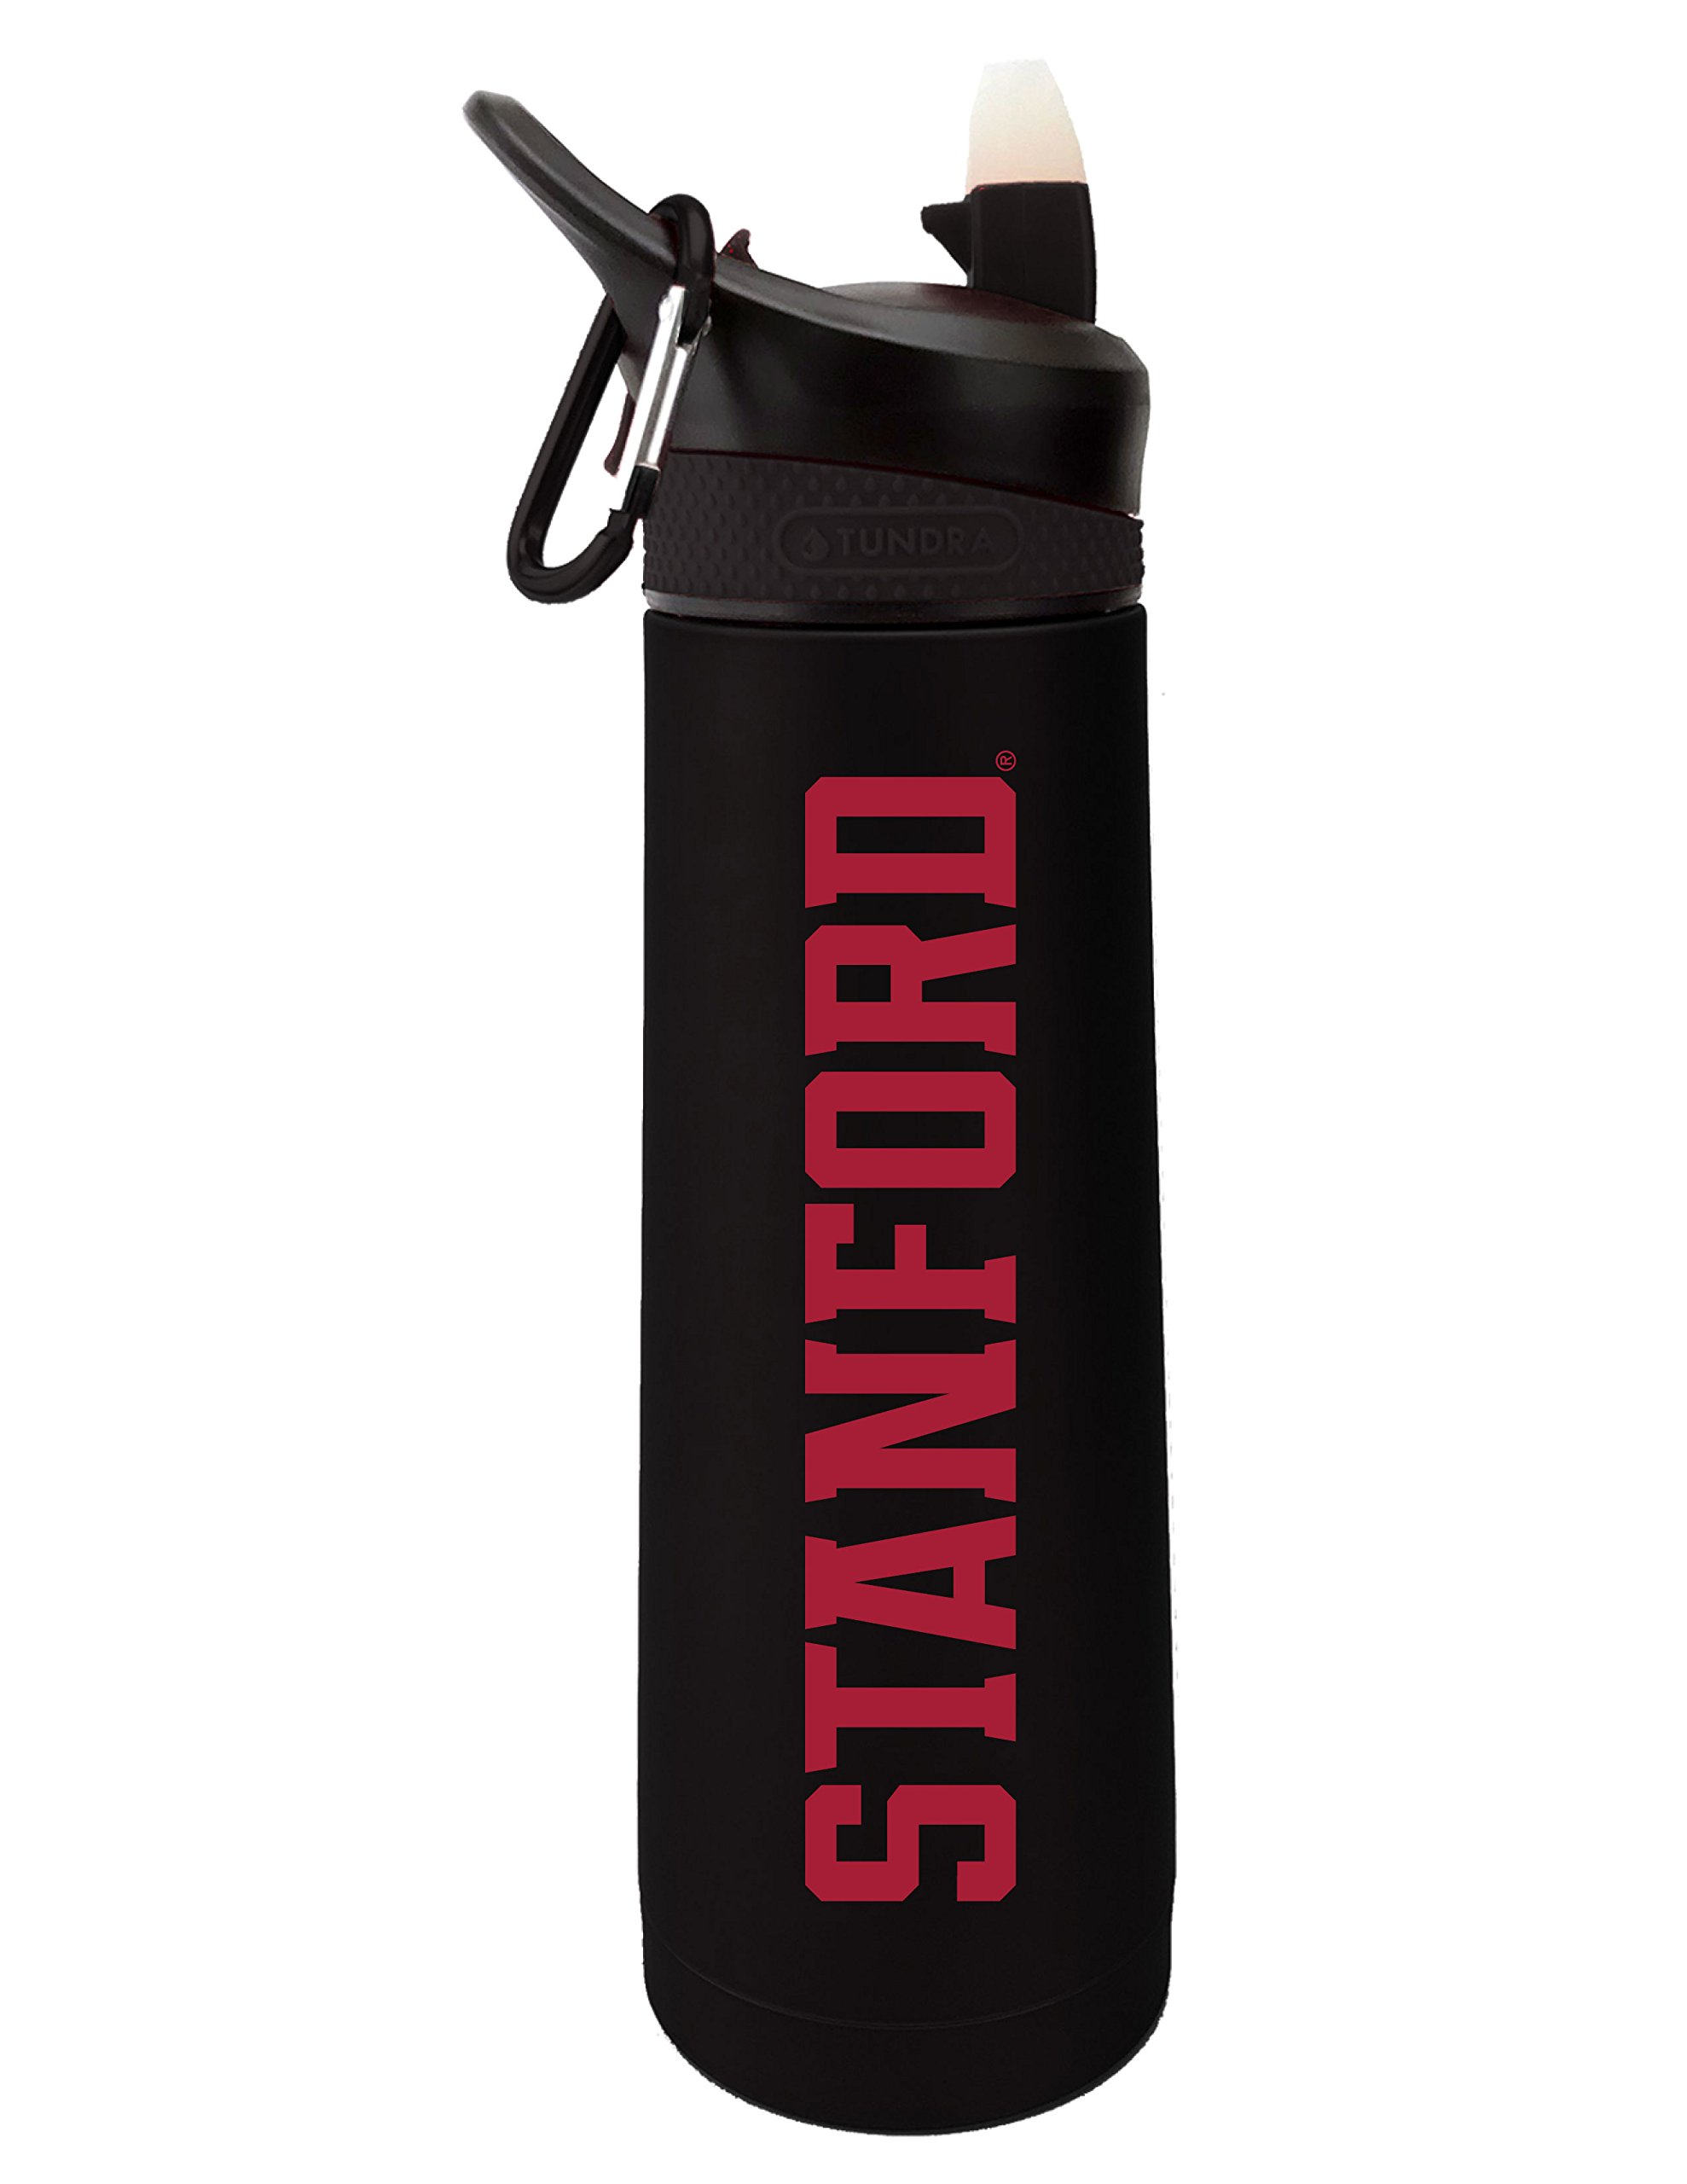 Fanatic Group University of Stanford Dual Walled Stainless Steel Sports Bottle, Design 1 - Black